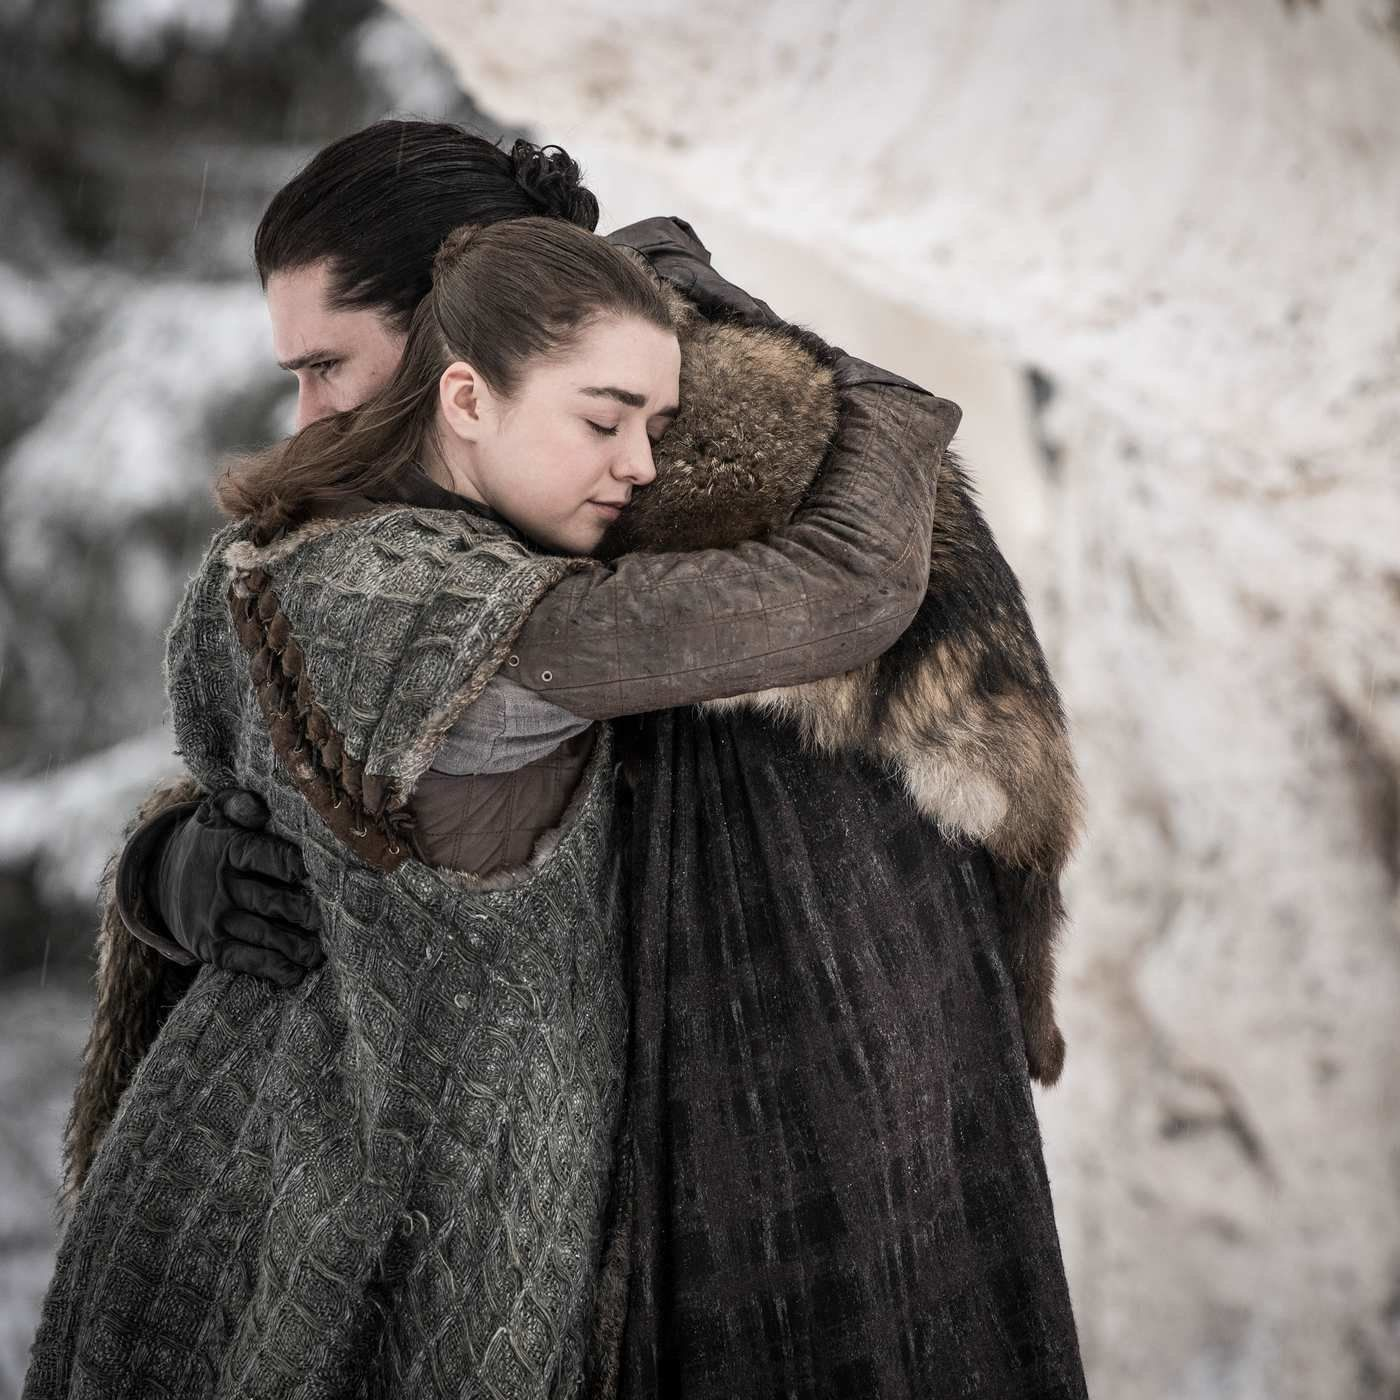 fans-point-out-major-game-of-thrones-callbacks-in-season-8-premiere